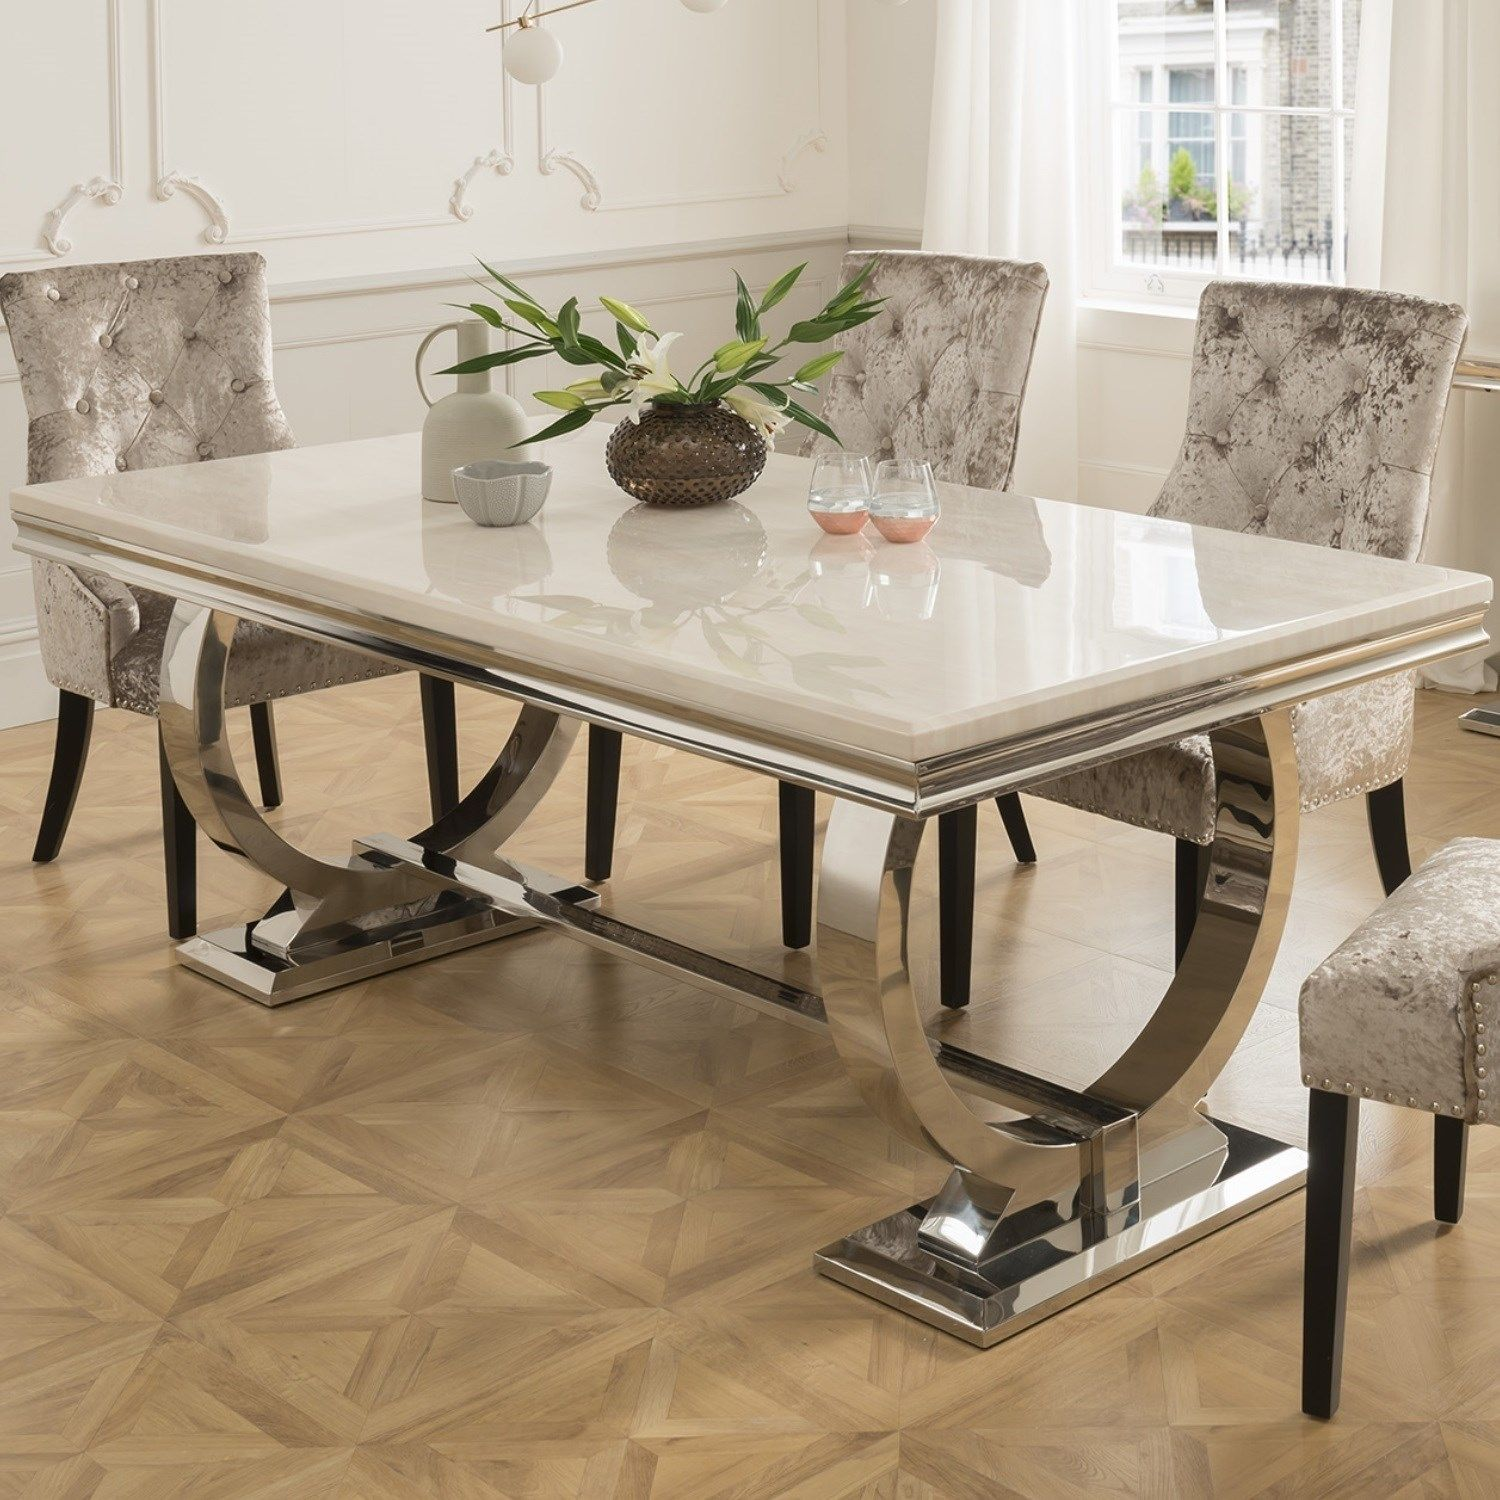 Vida Living Arianna Cream Marble Dining Table 180cm Dining Table Marble Glass Dining Room Table Marble Top Dining Table